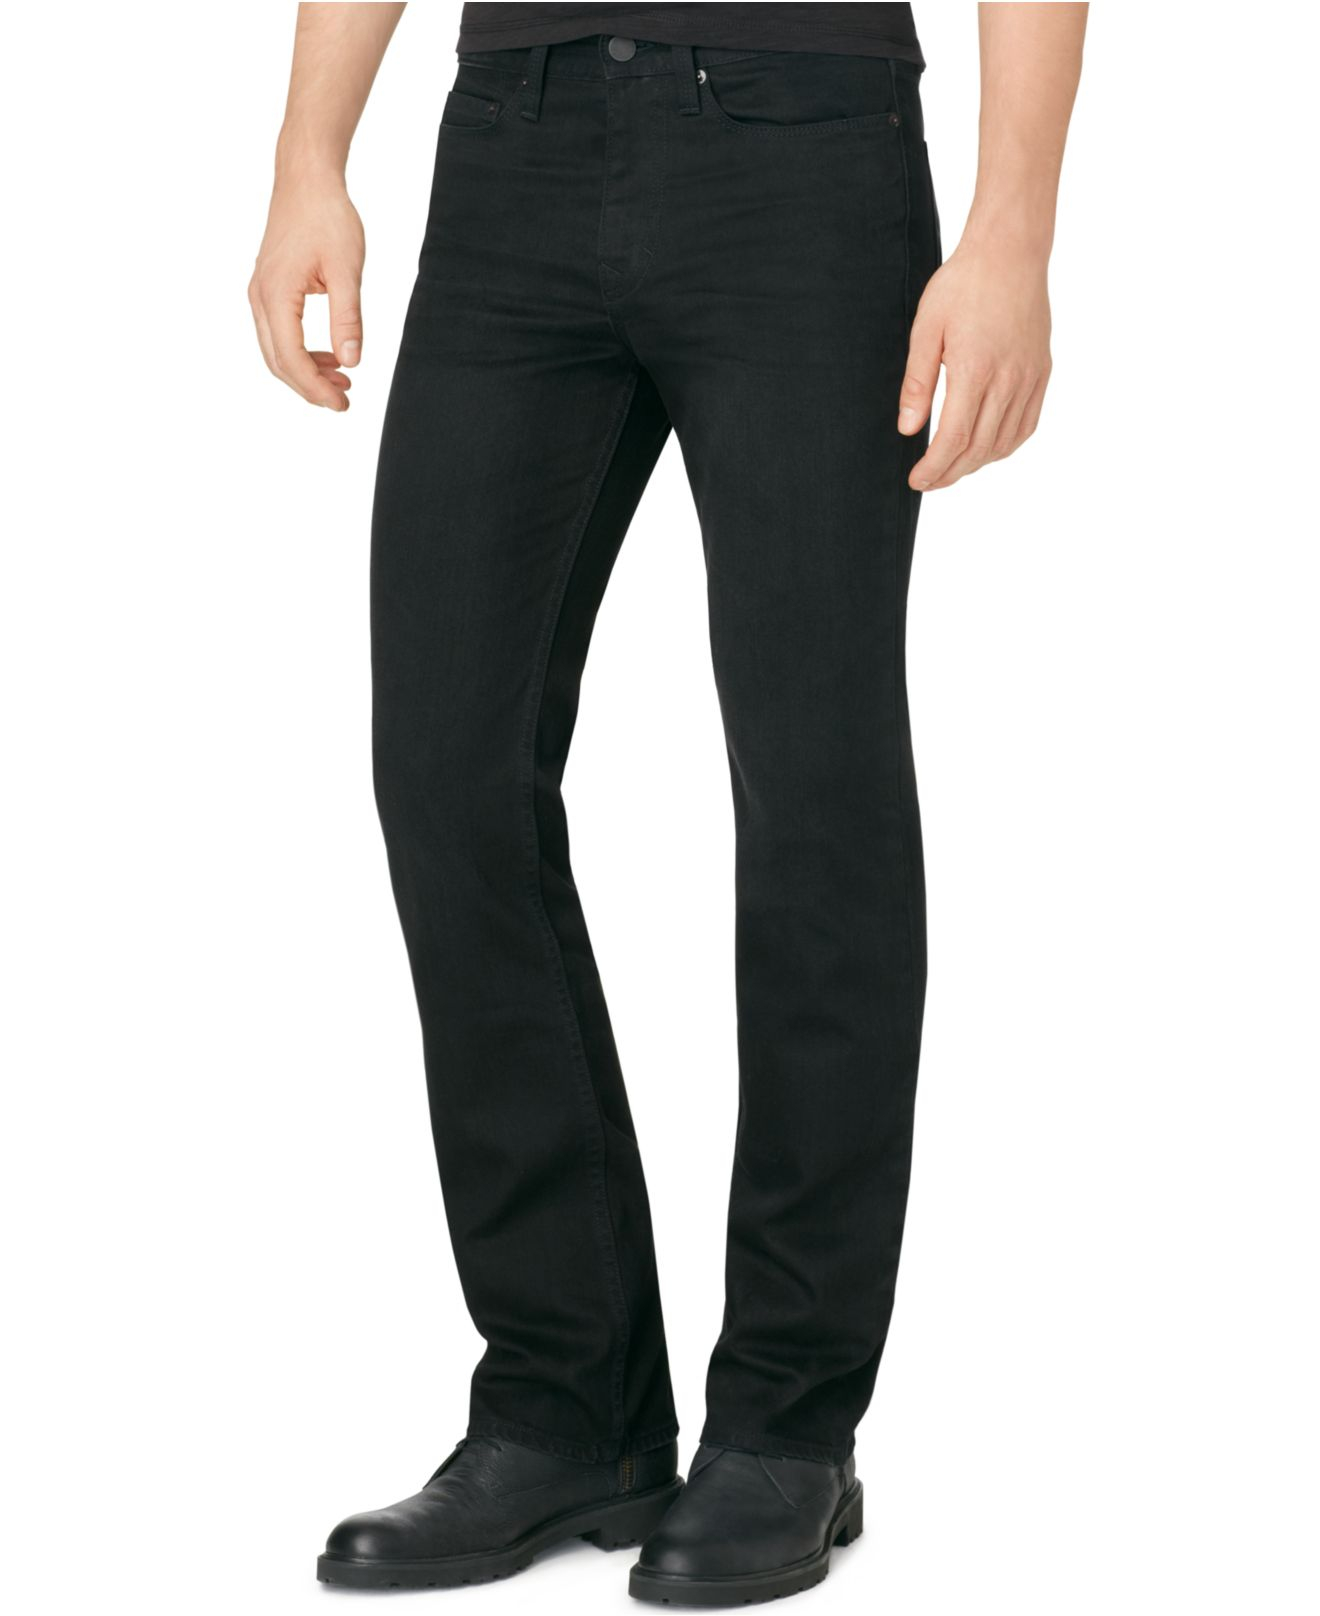 black bootcut jeans men - Jean Yu Beauty